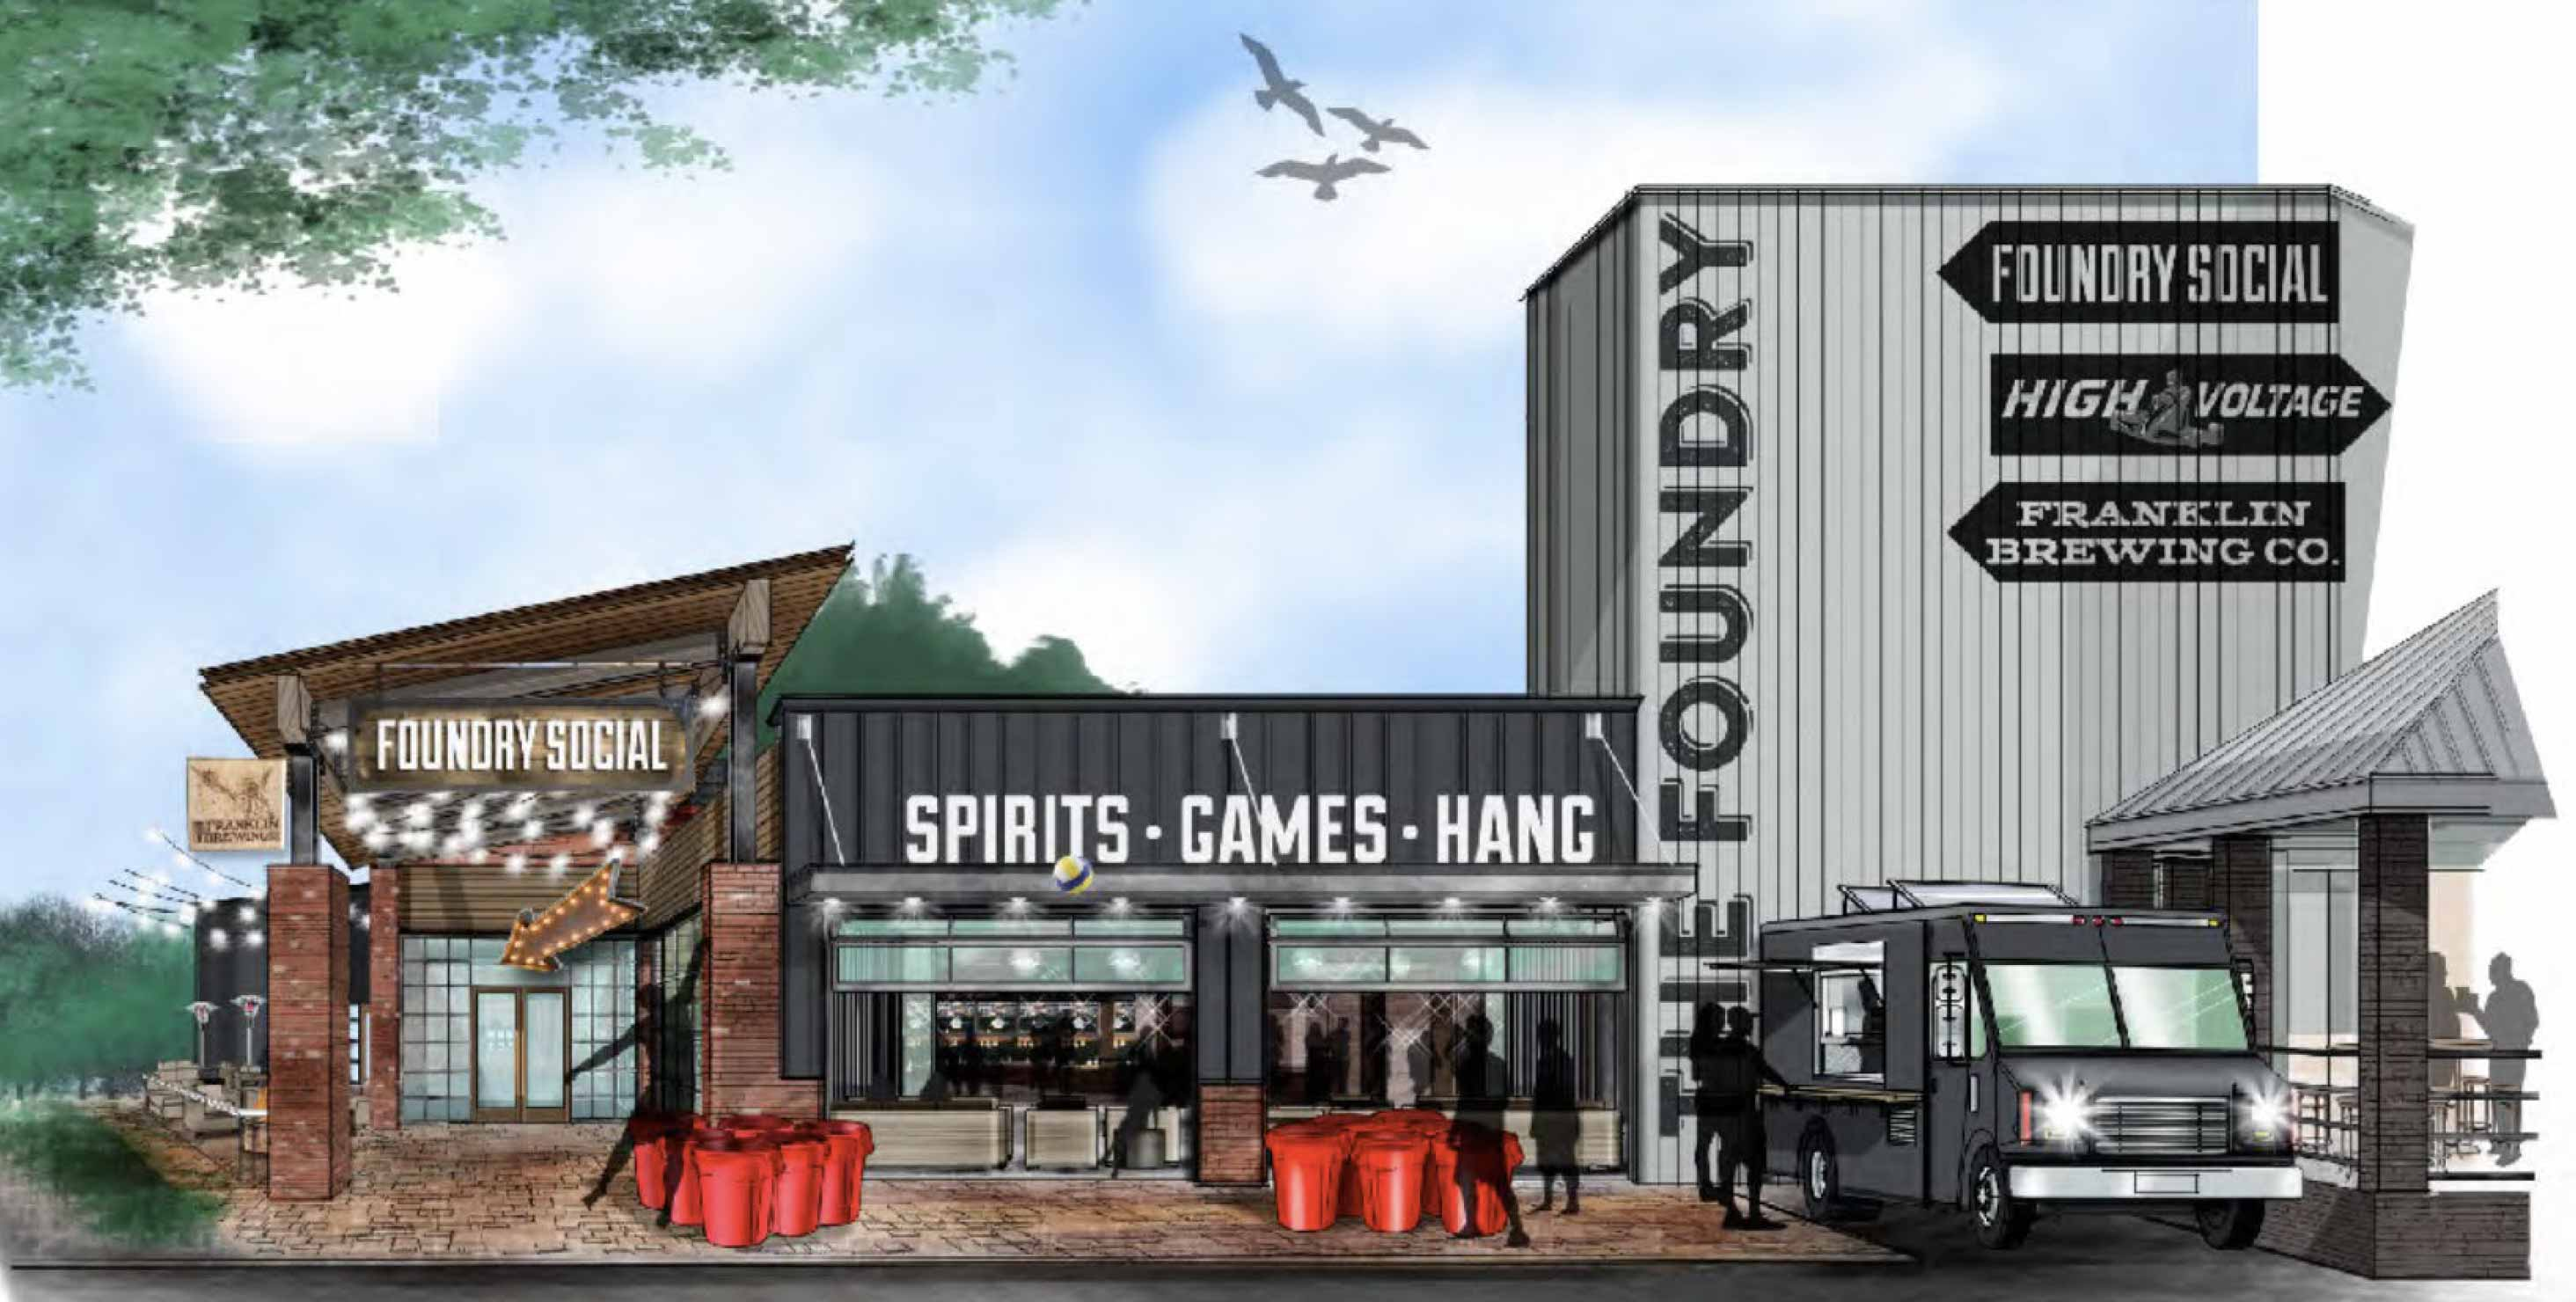 Foundry Social Exterior Architect Rendering